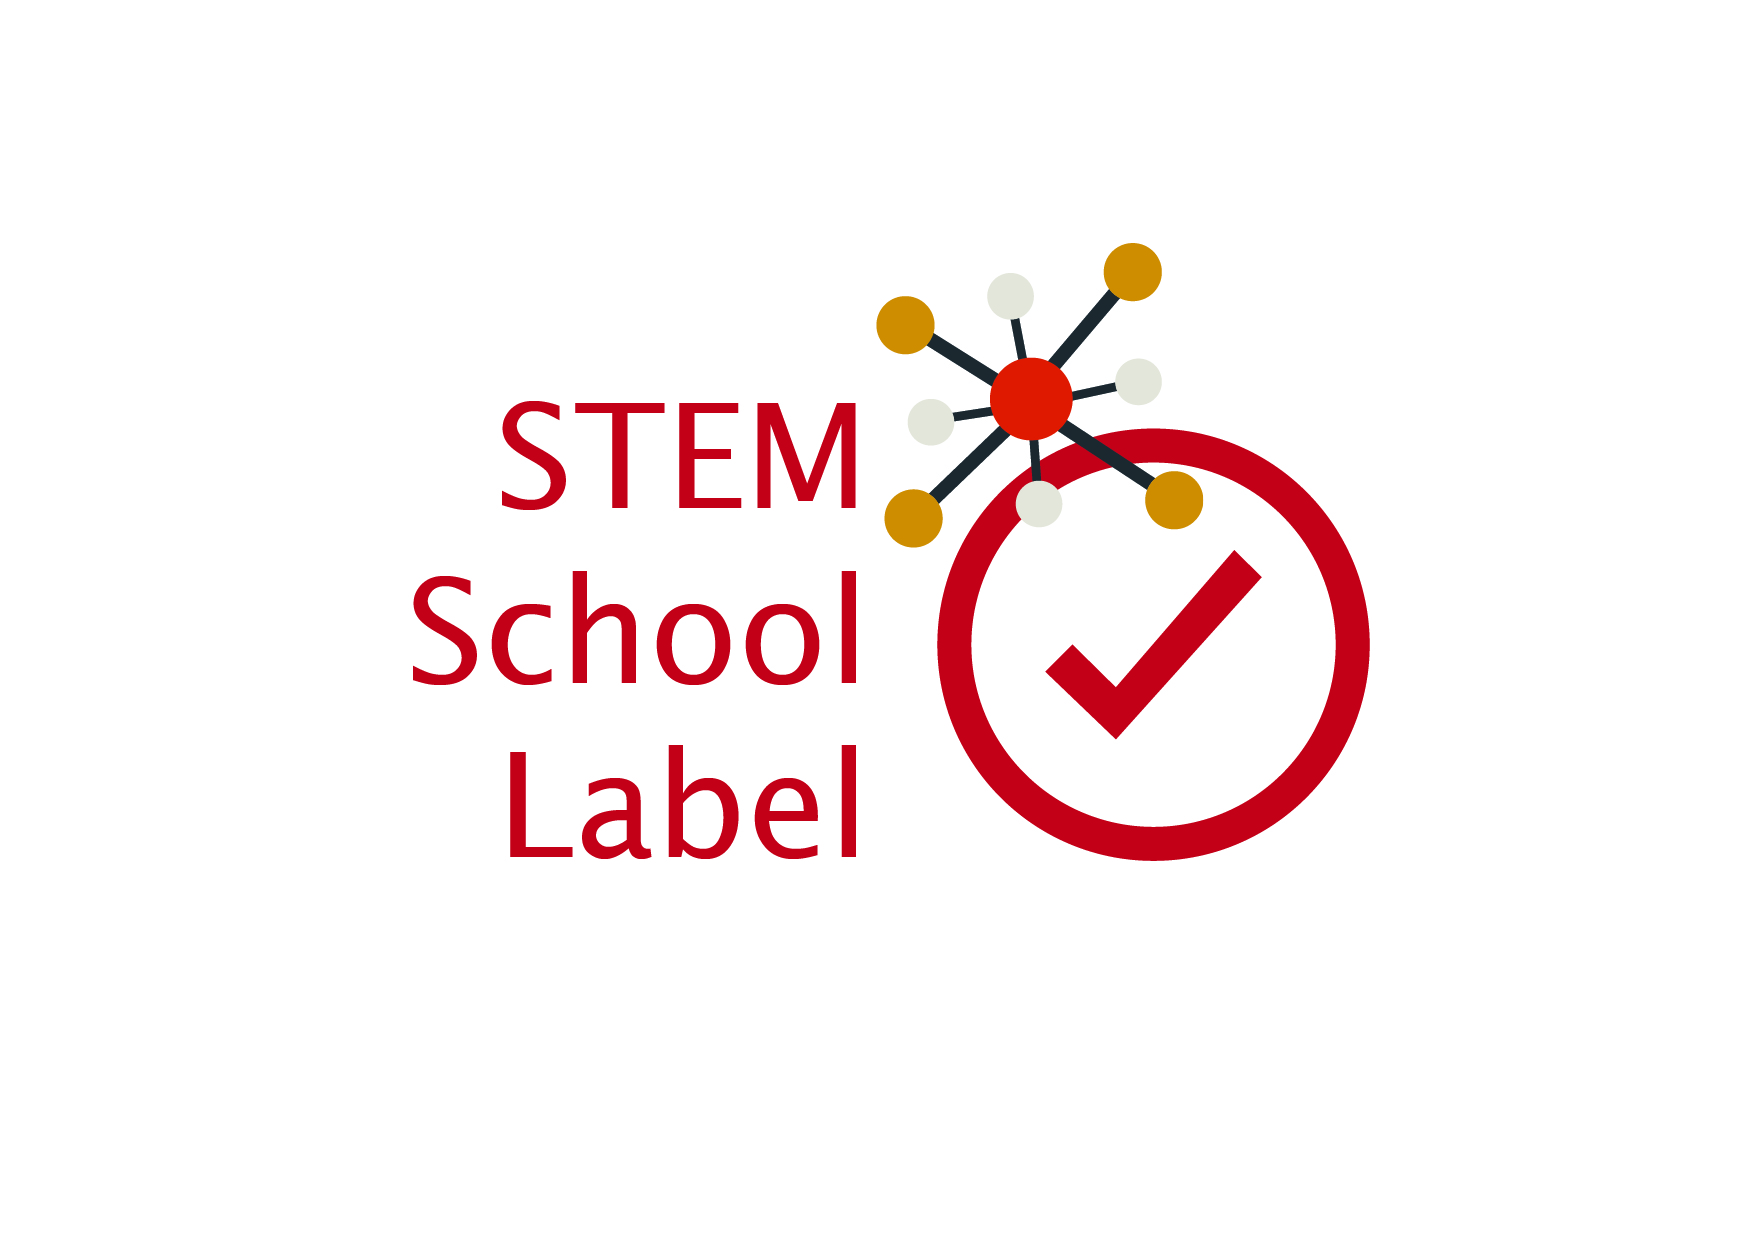 STEM SCHOOL LABEL: BRING YOUR SCHOOL'S STEM STRATEGY TO THE NEXT LEVEL!